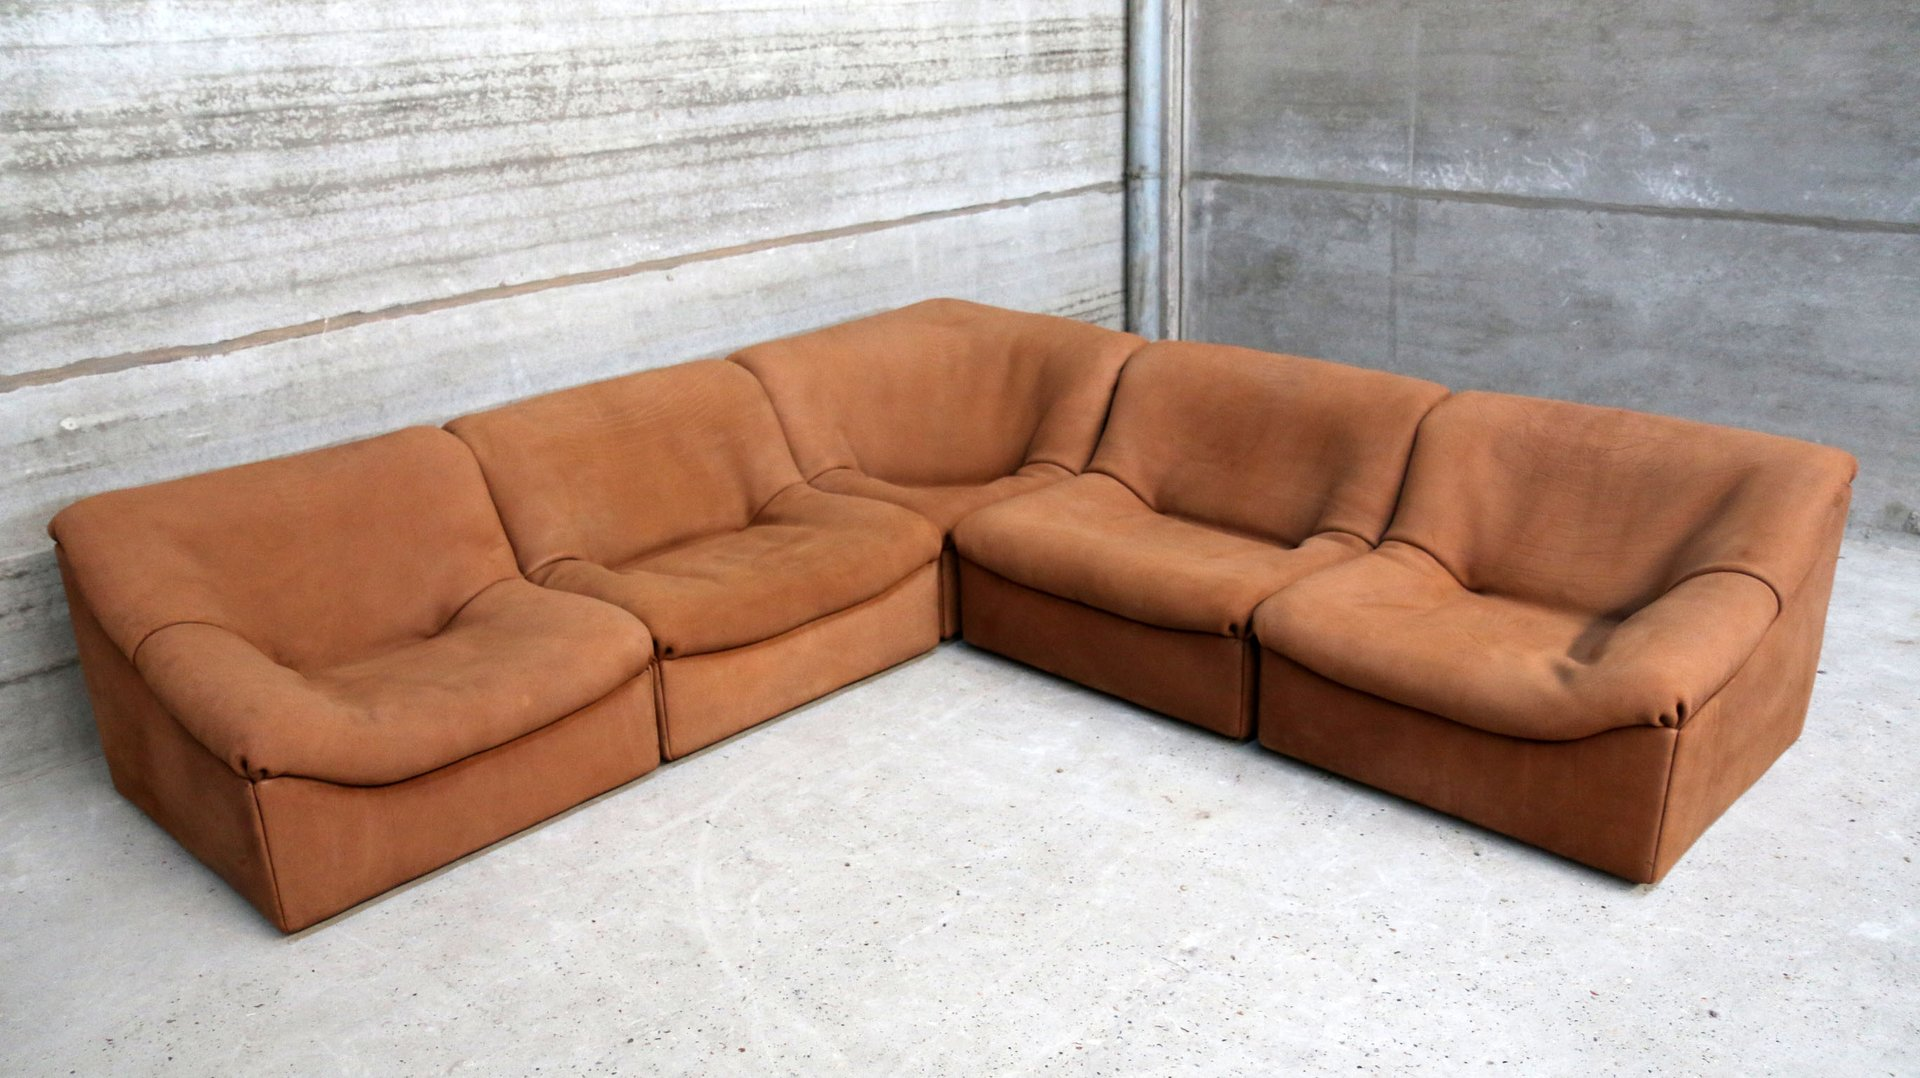 DS 46 Modular Corner Sofa from de Sede 1970s for sale at Pamono